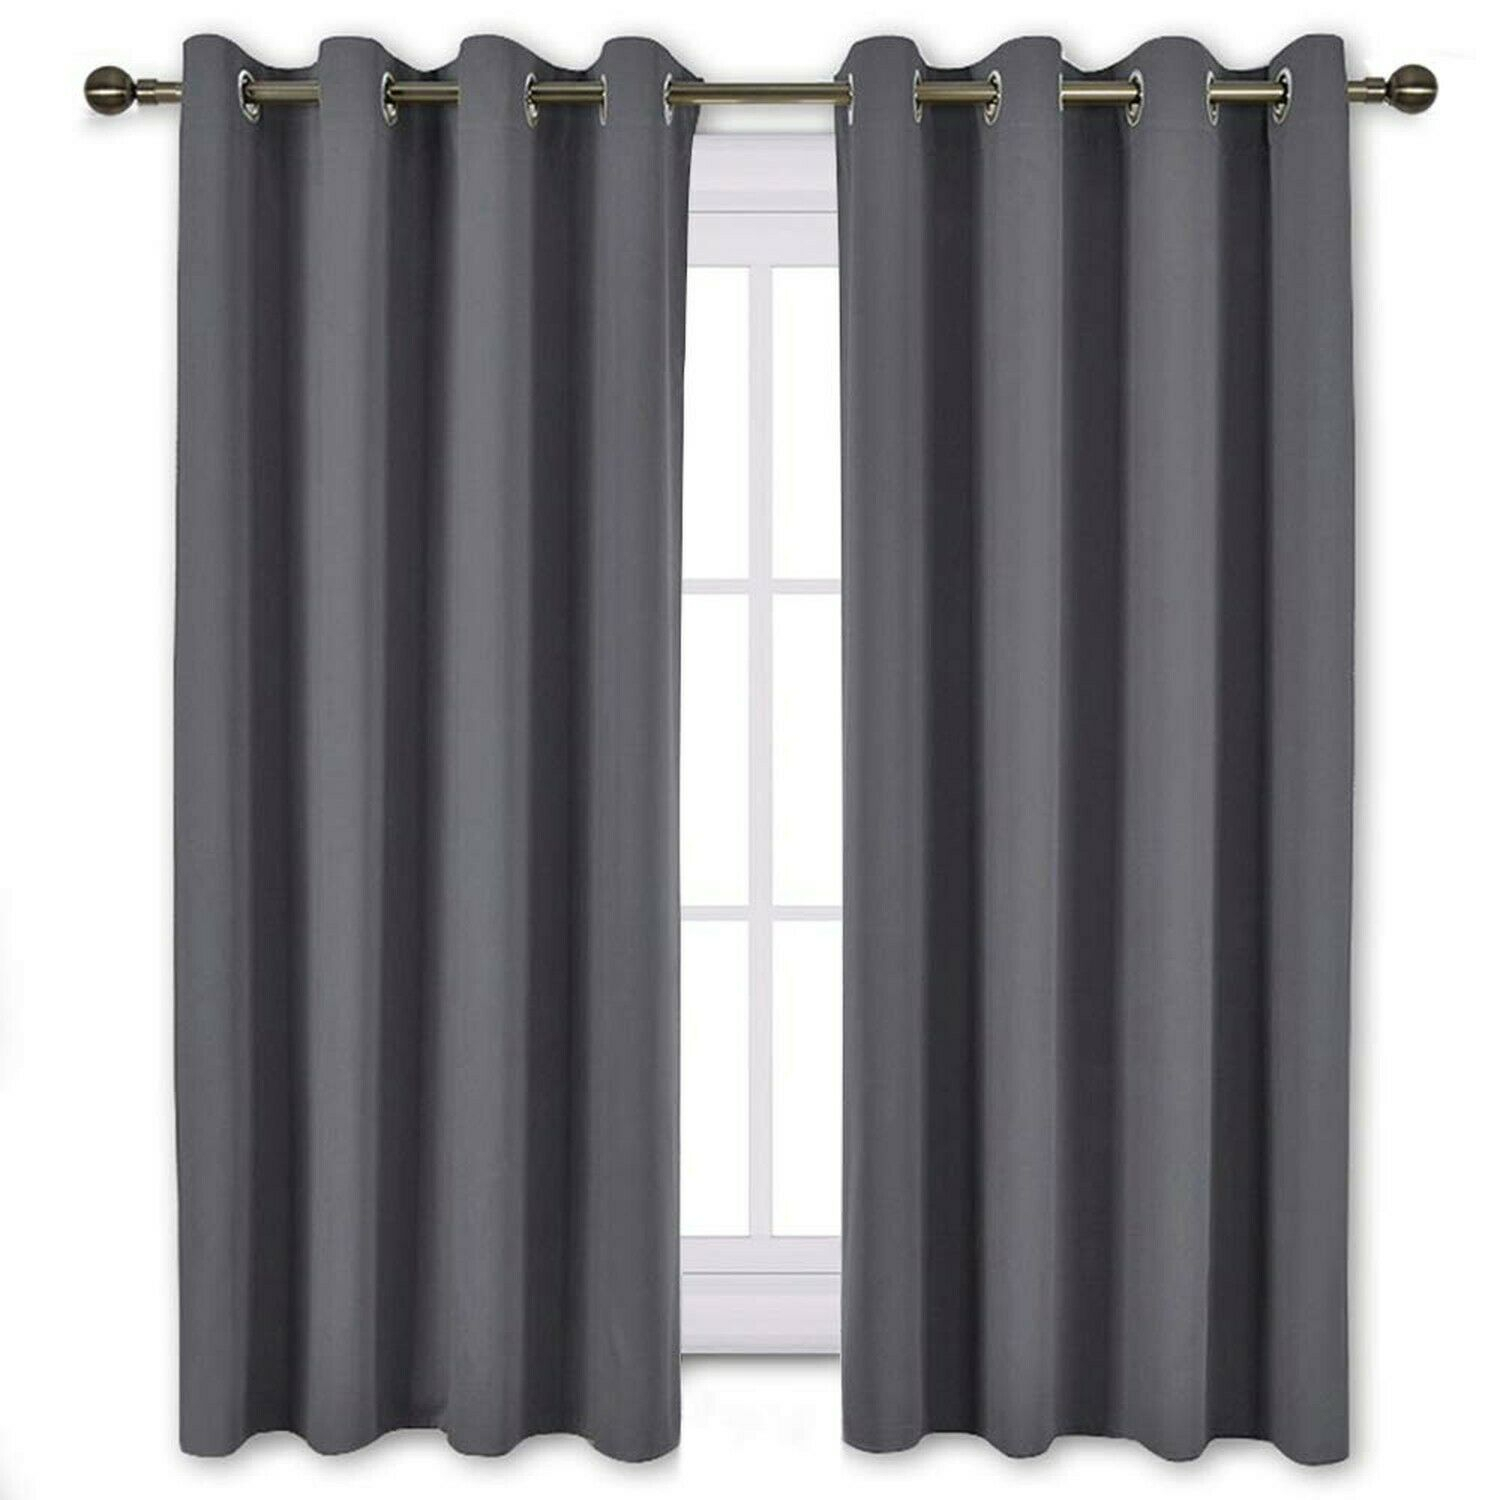 Nicetown Window Treatment Thermal Insulated Solid Grommet Blackout Intended For Solid Cotton True Blackout Curtain Panels (View 22 of 30)